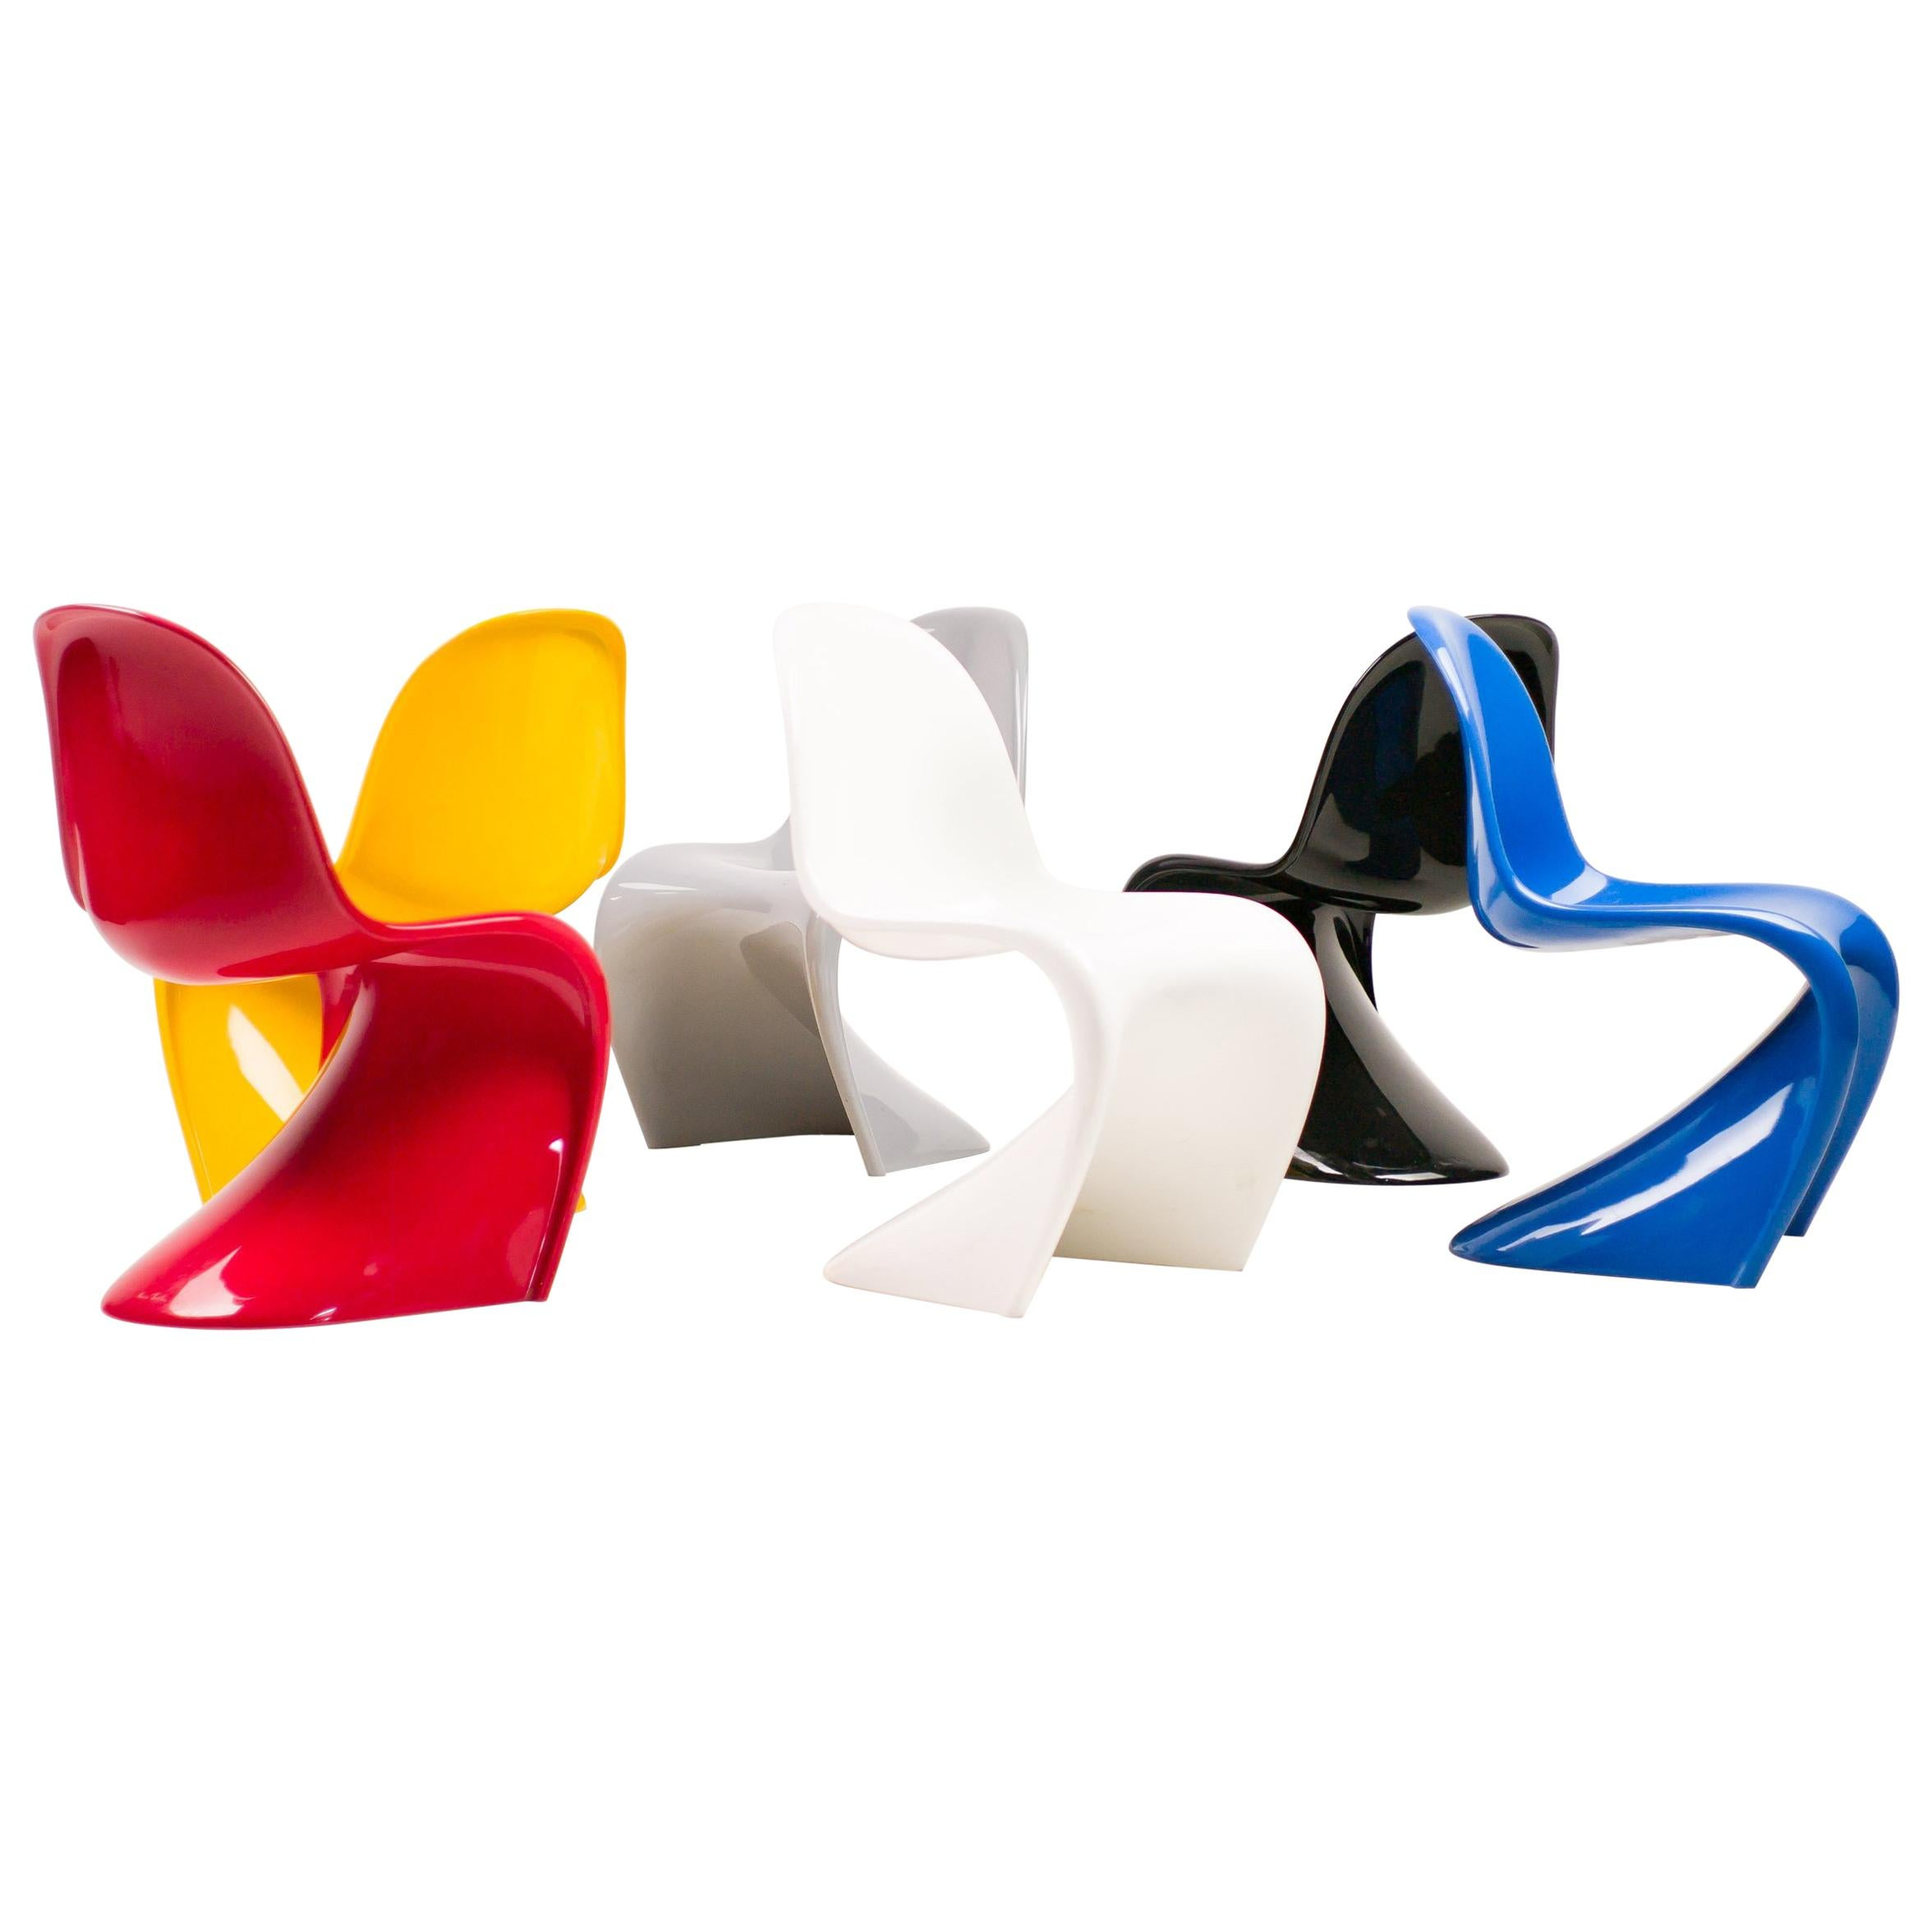 Set of Six Panton Chairs Primary Colors  sc 1 st  1stDibs & Verner Panton Chairs - 65 For Sale at 1stdibs